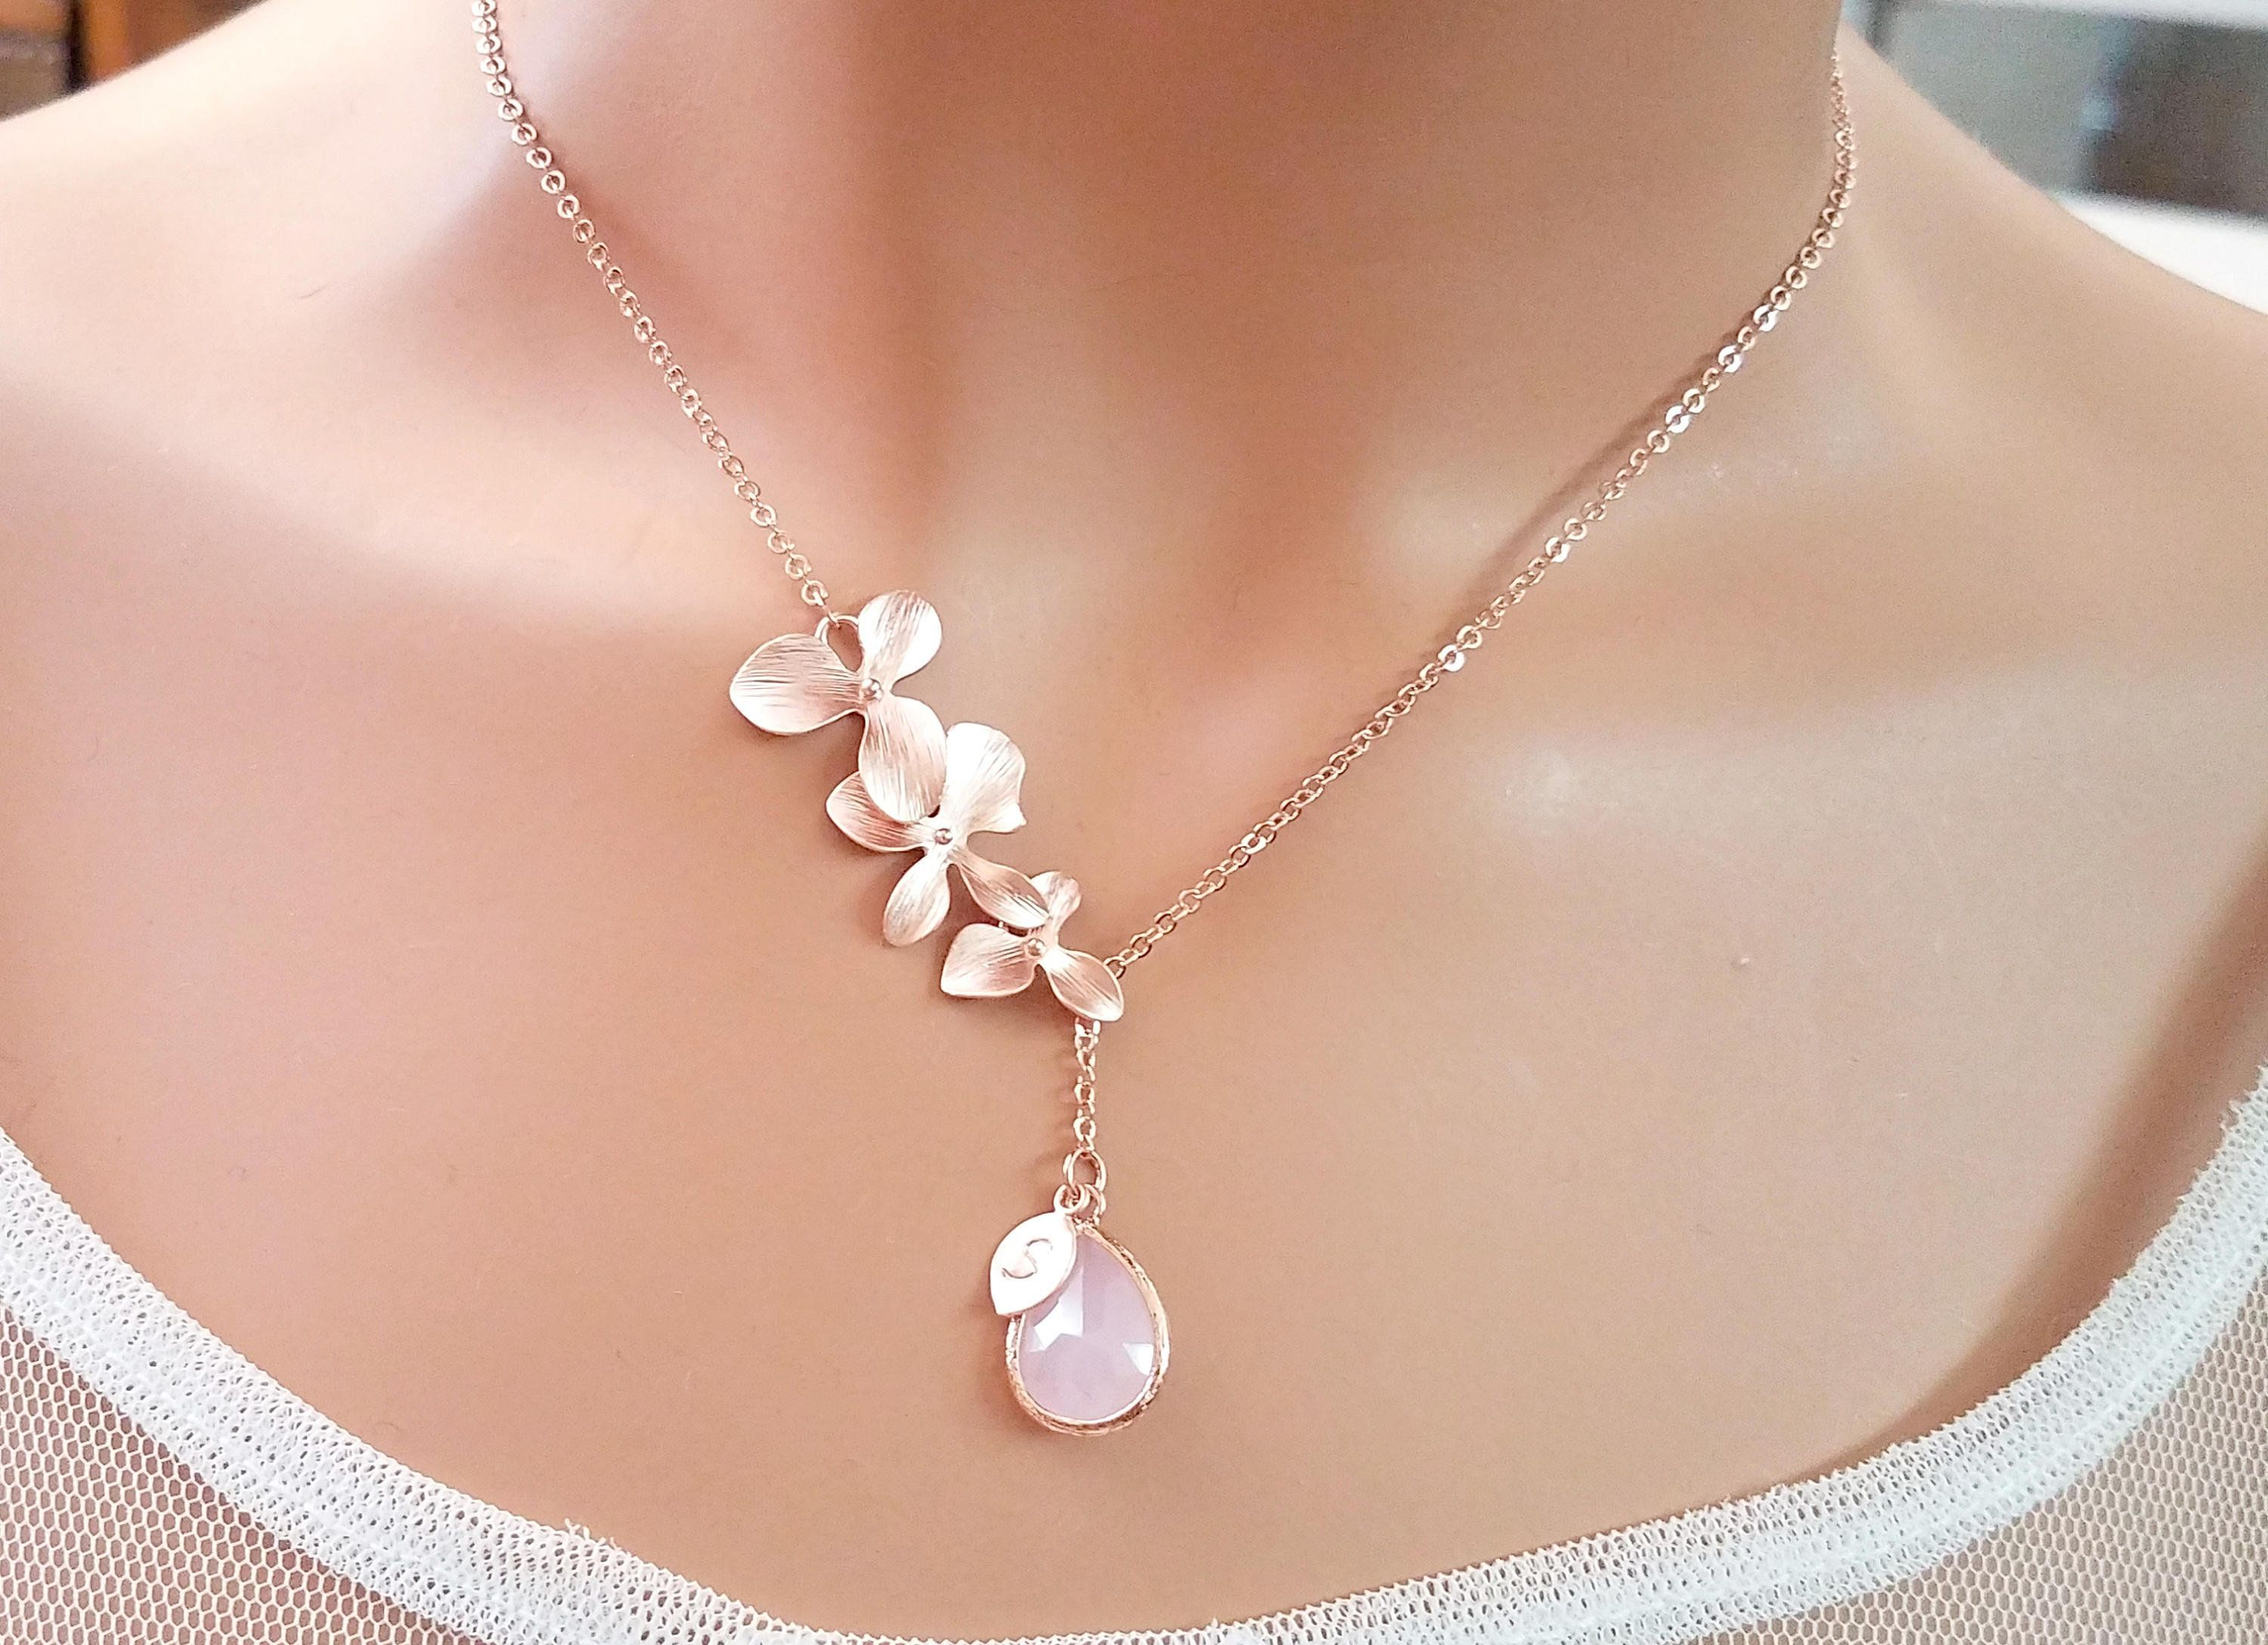 Personalized Birthstone Necklace Orchid Flower Necklace Pink Opal Necklace Birthstone Jewelry Personalized Gift Christmas Gifts for Her